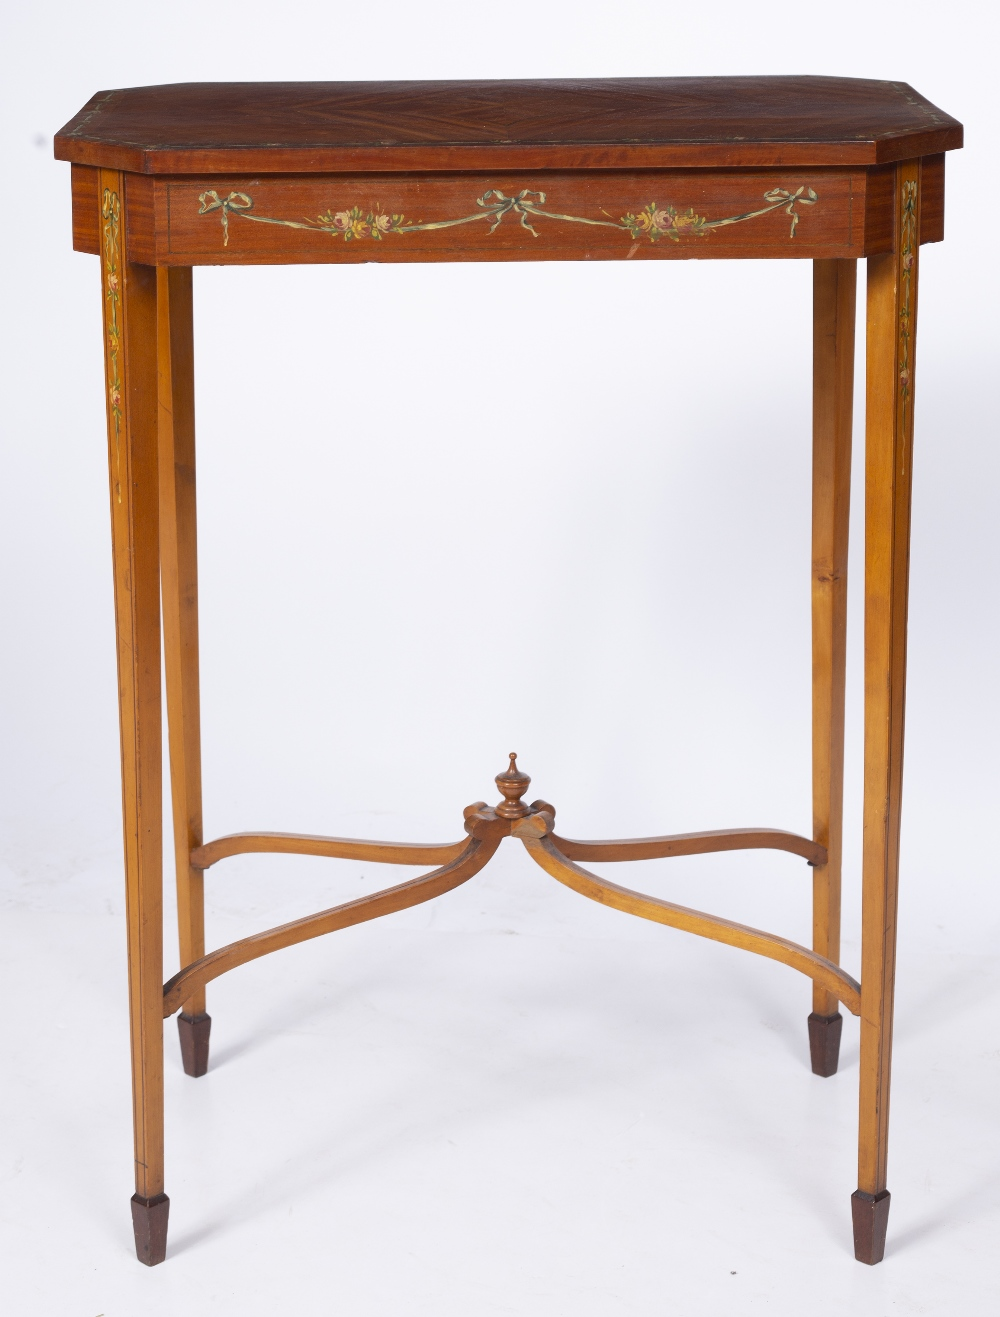 AN EDWARDIAN SATINWOOD OCCASIONAL TABLE, the rectangular top with canted corners and crossbanded - Image 5 of 8